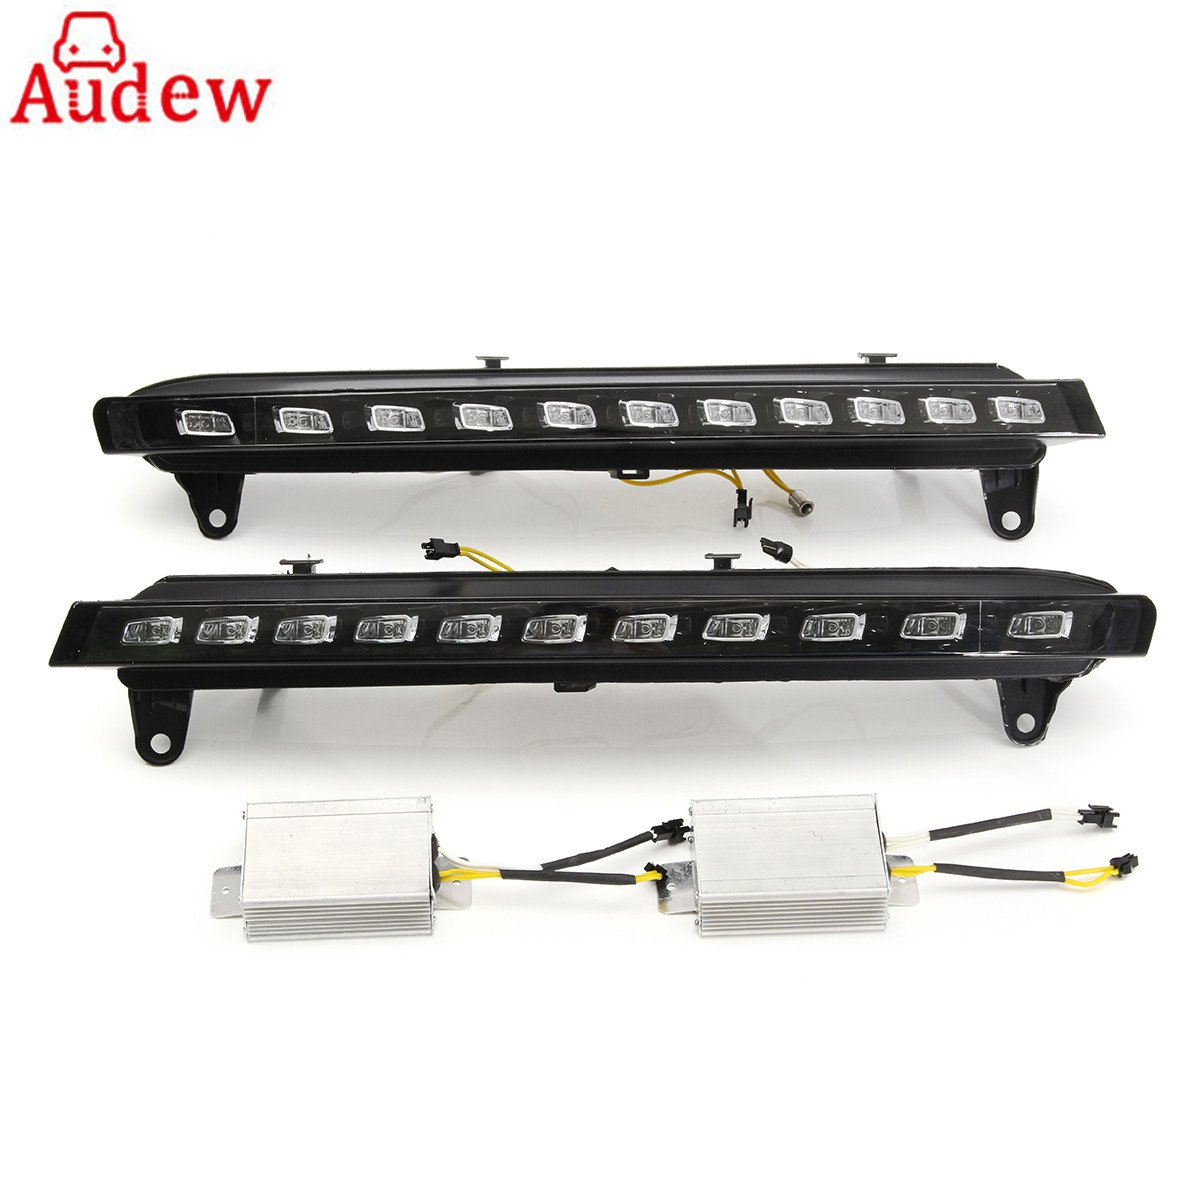 2Pcs DRL LED Daytime Running Lights Lamp Car Yellow Turn Signal Light Bar Fog Lights 12V For Audi Q7 2007 - 2009 Car Styling new auto car led daytime running lights drl yellow turn signal fog lamp for audi q7 2006 2007 2008 2009